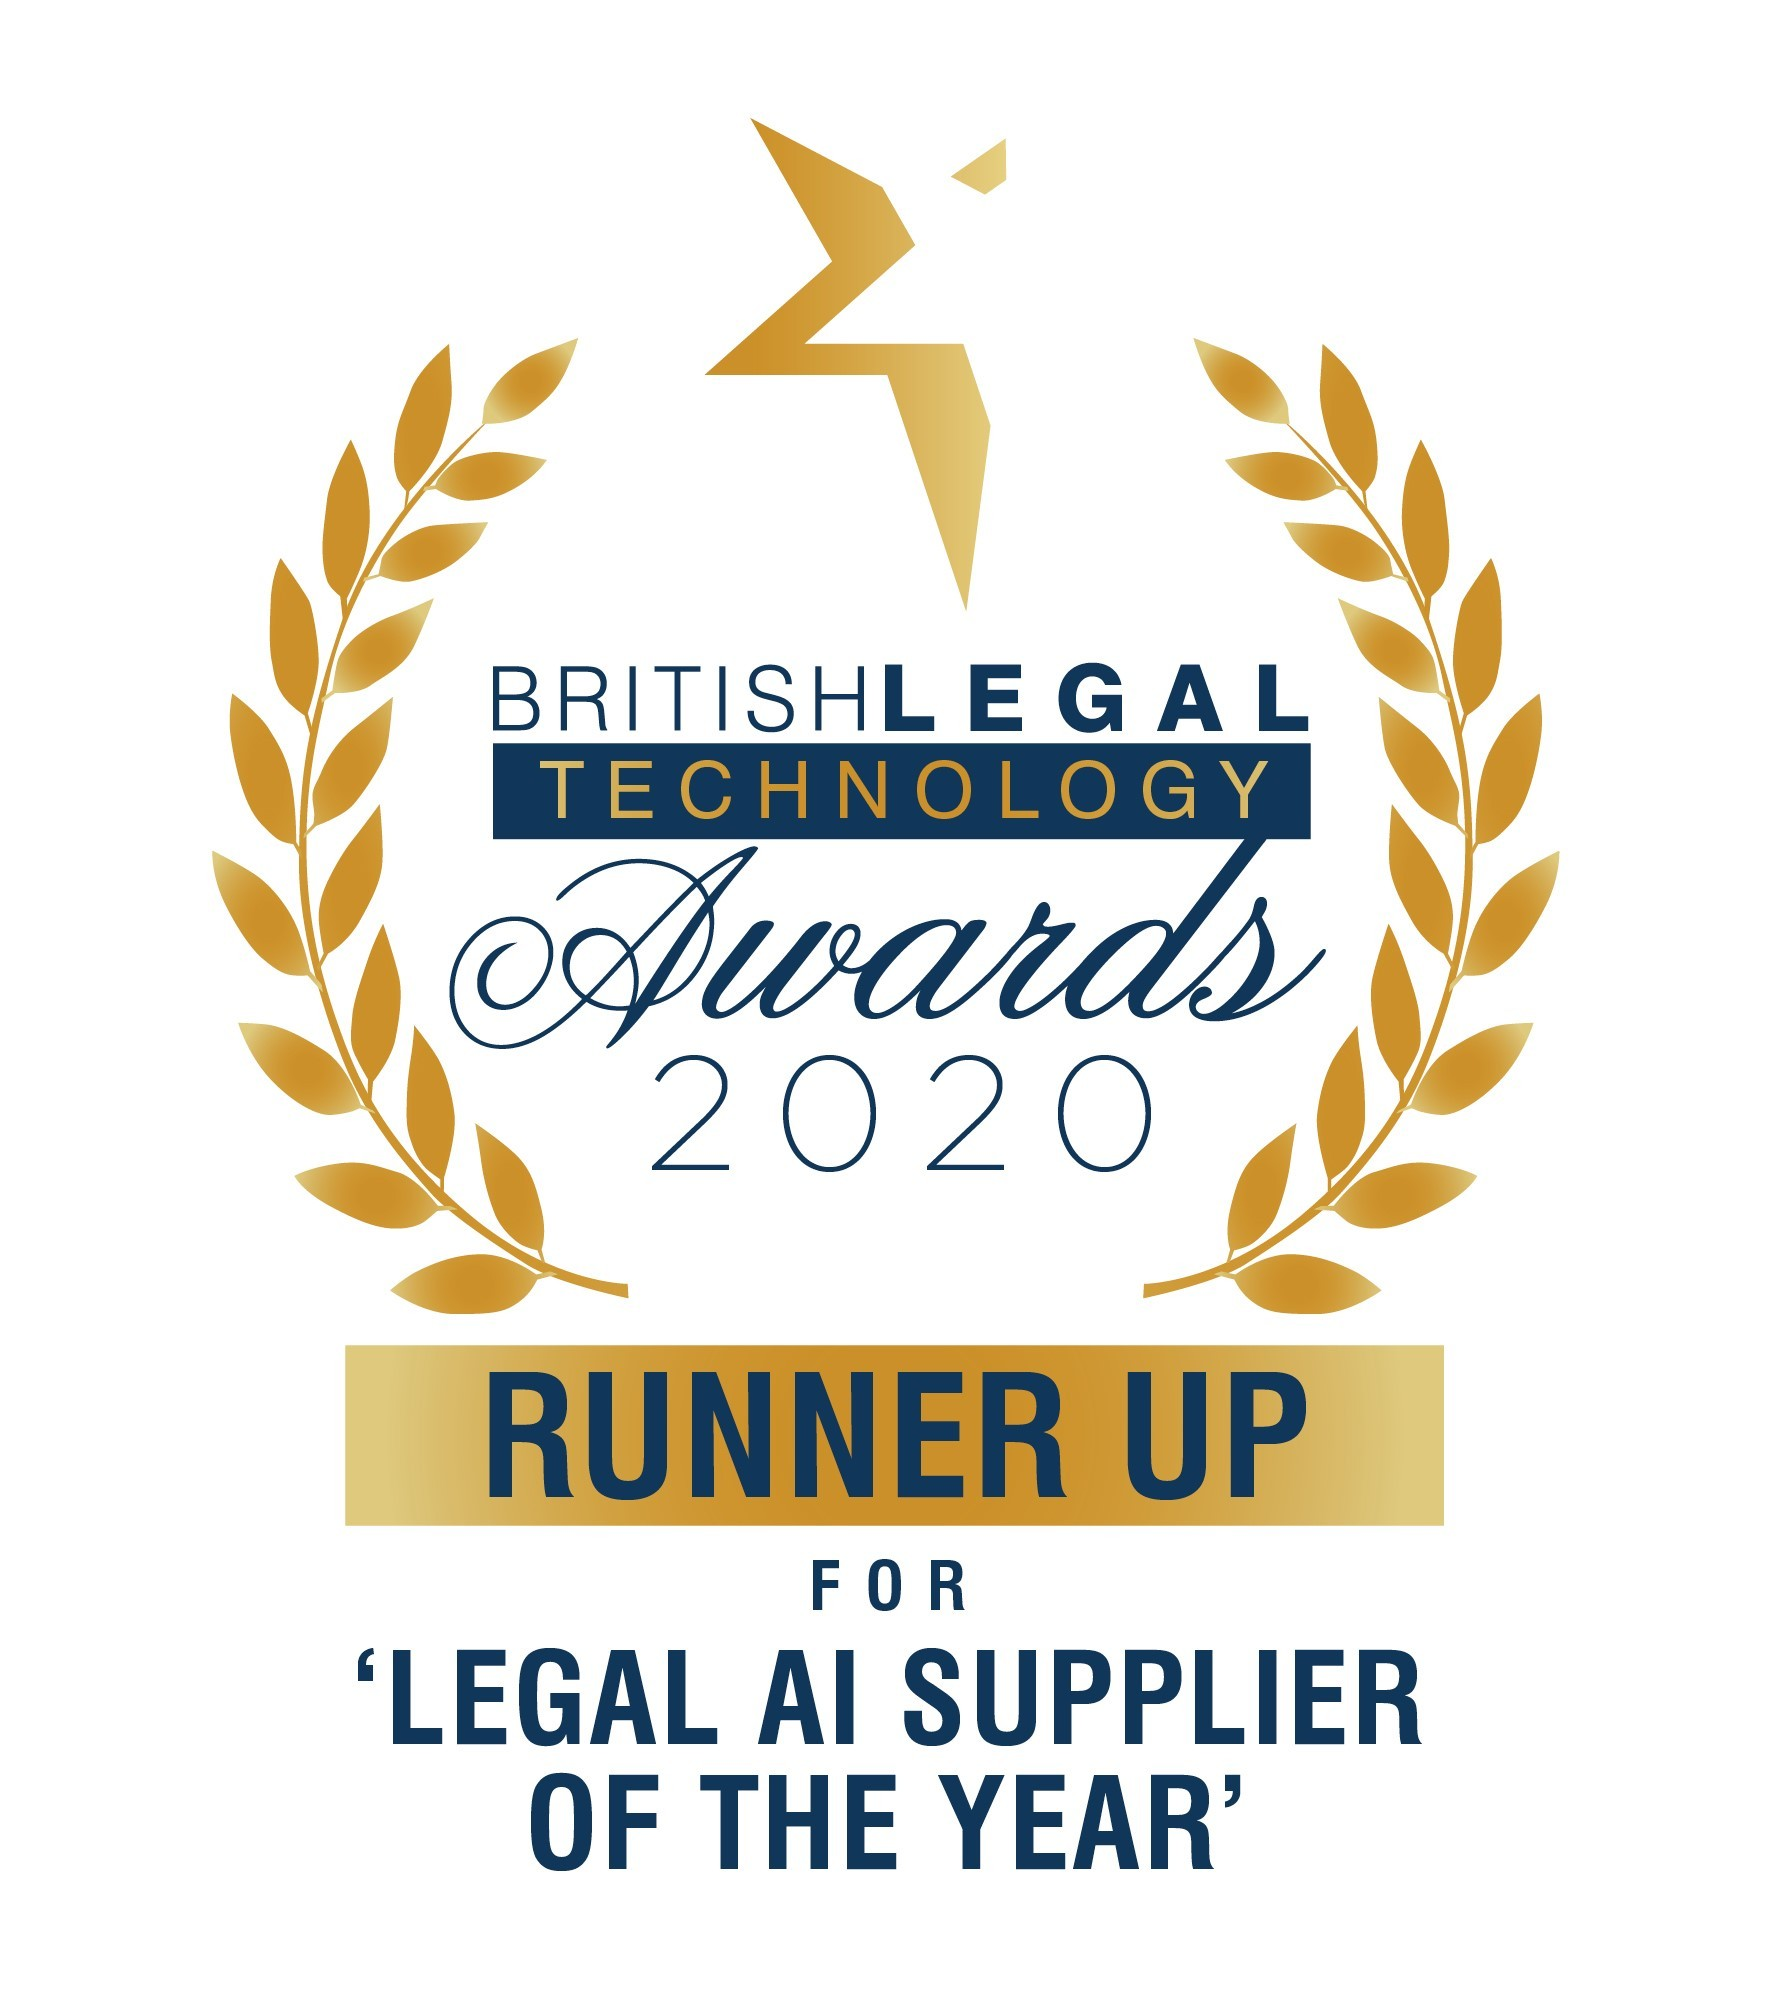 Legal AI Supplier of the Year